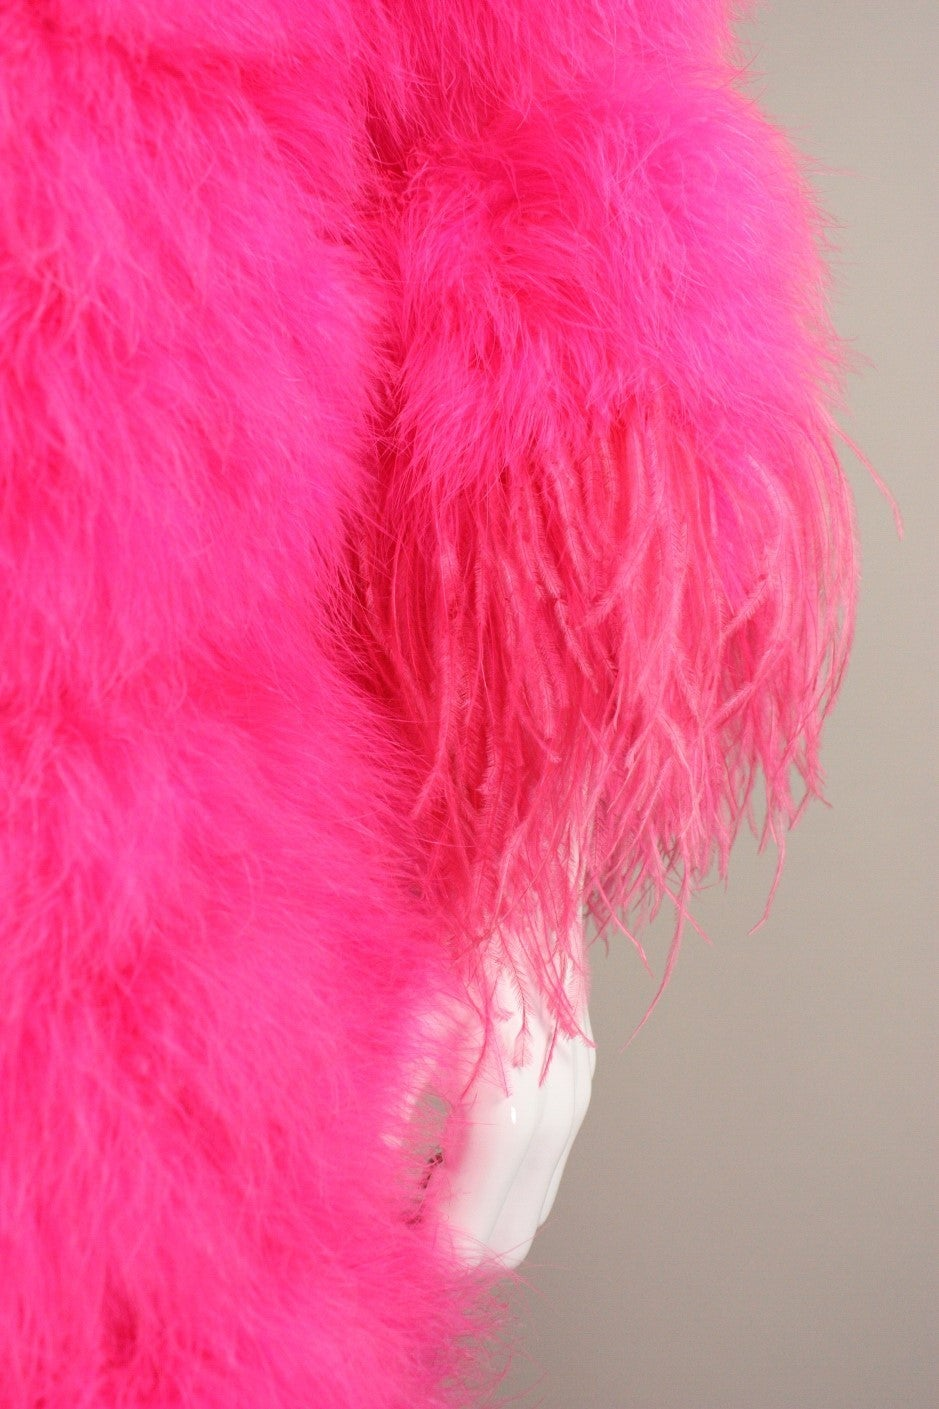 Full-Length Hot Pink Marabou Coat with Ostrich Feather Trim For Sale 2